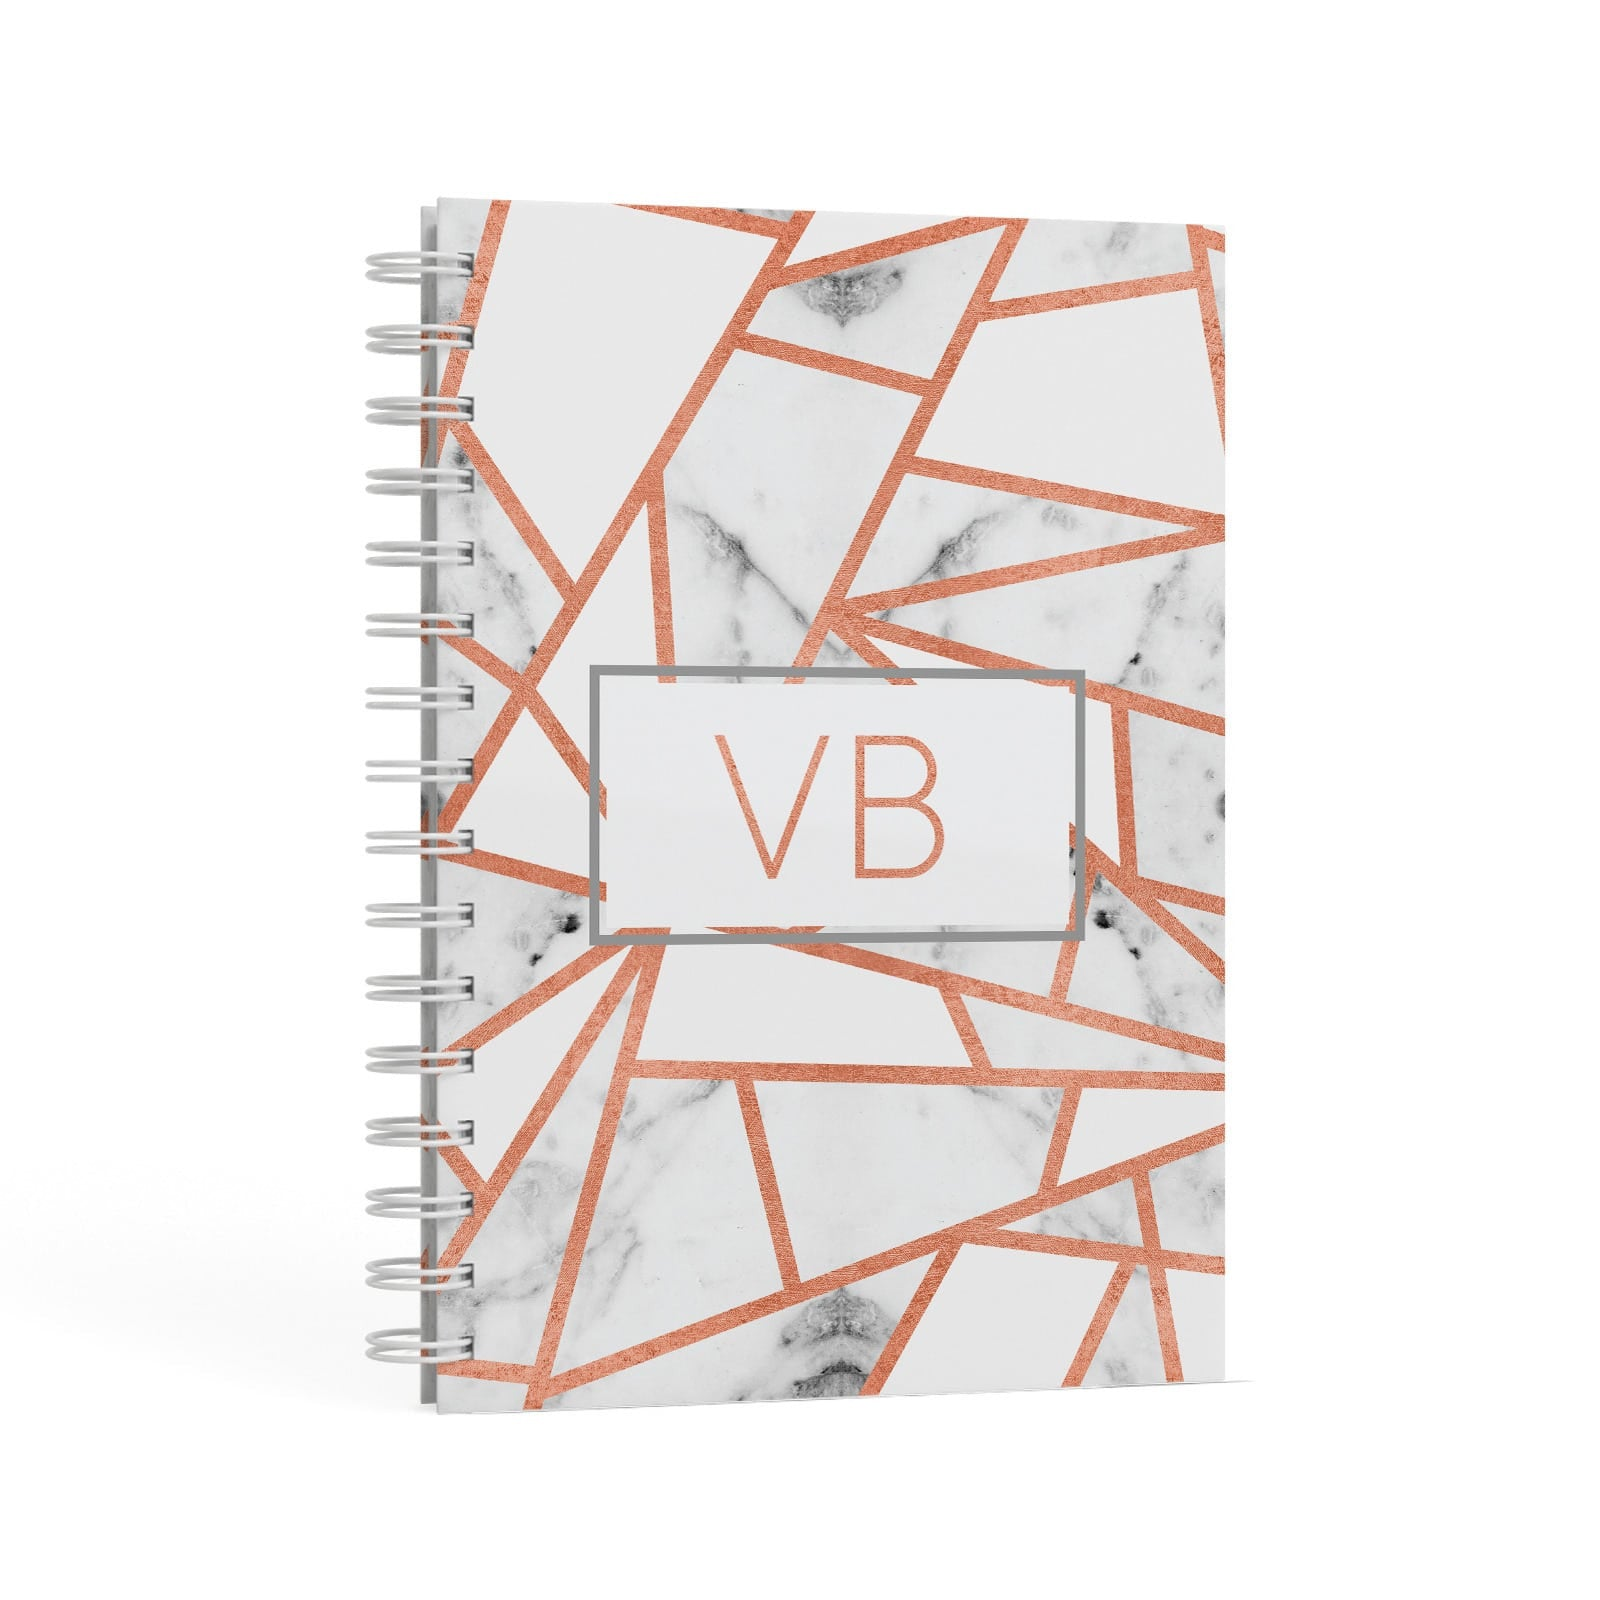 Personalised Rosegold Marble Initials A5 Hardcover Notebook Second Side View